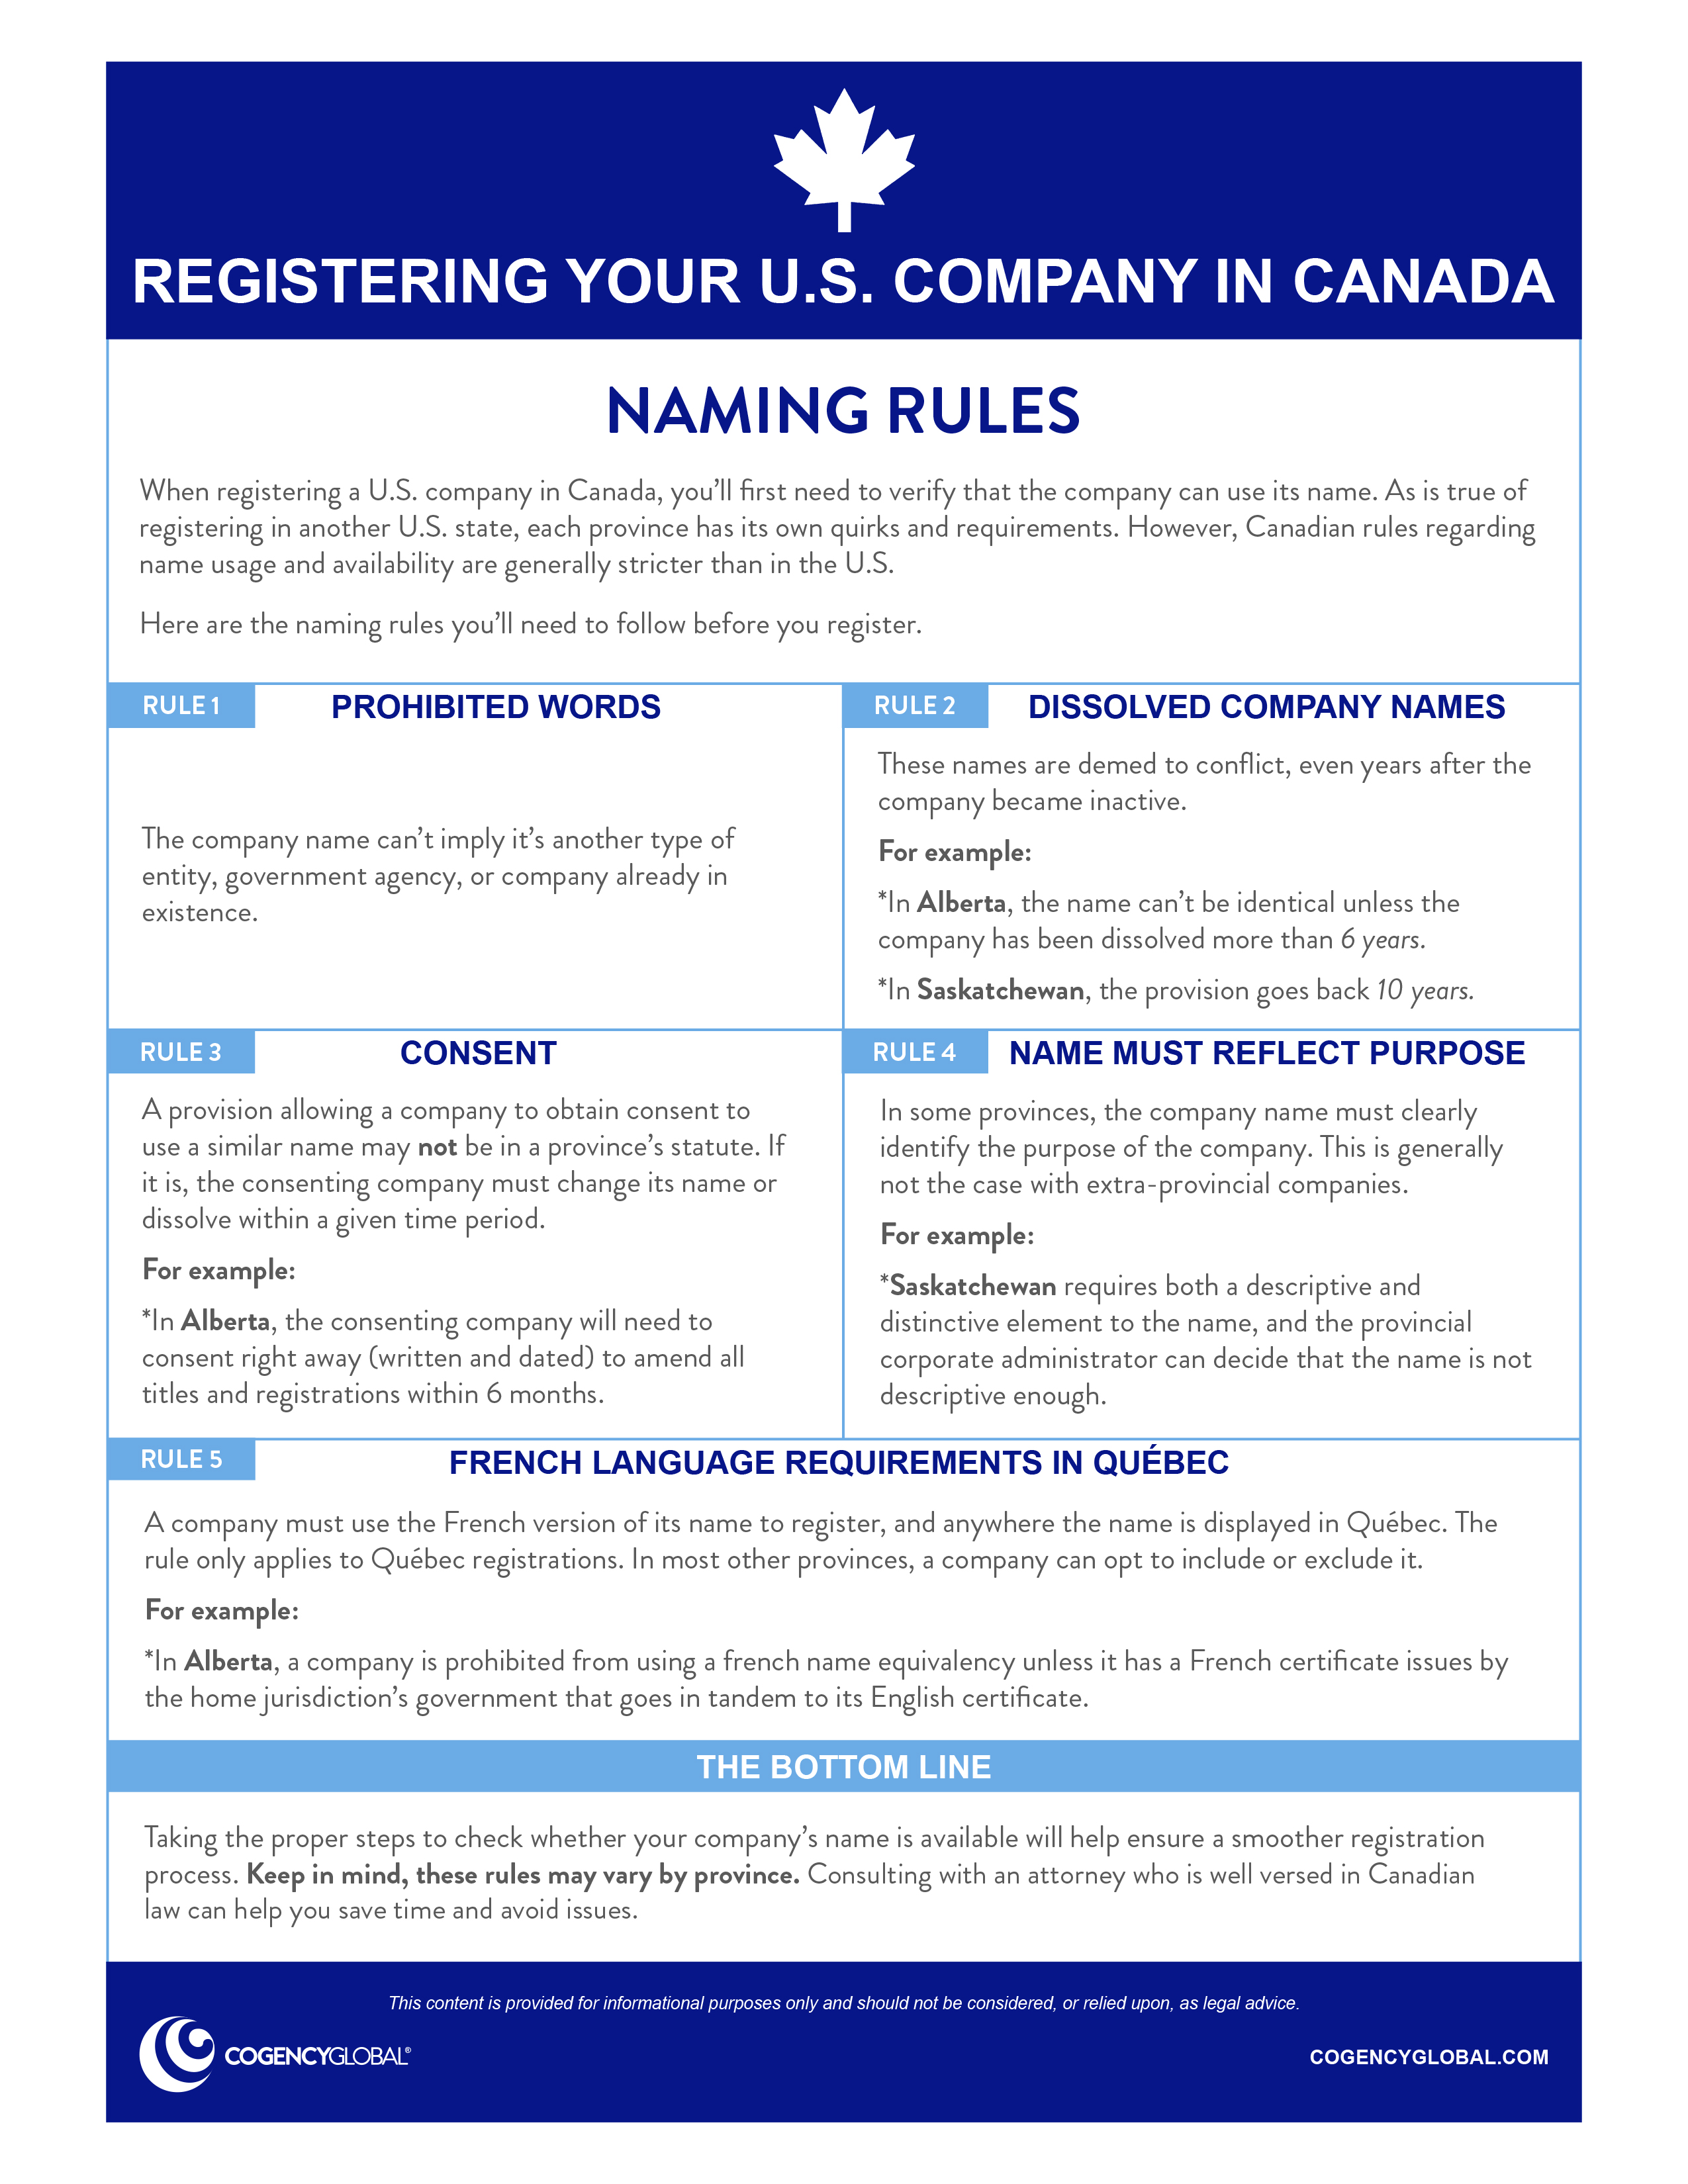 How to Register Your U.S. Company in Canada: Naming Rules